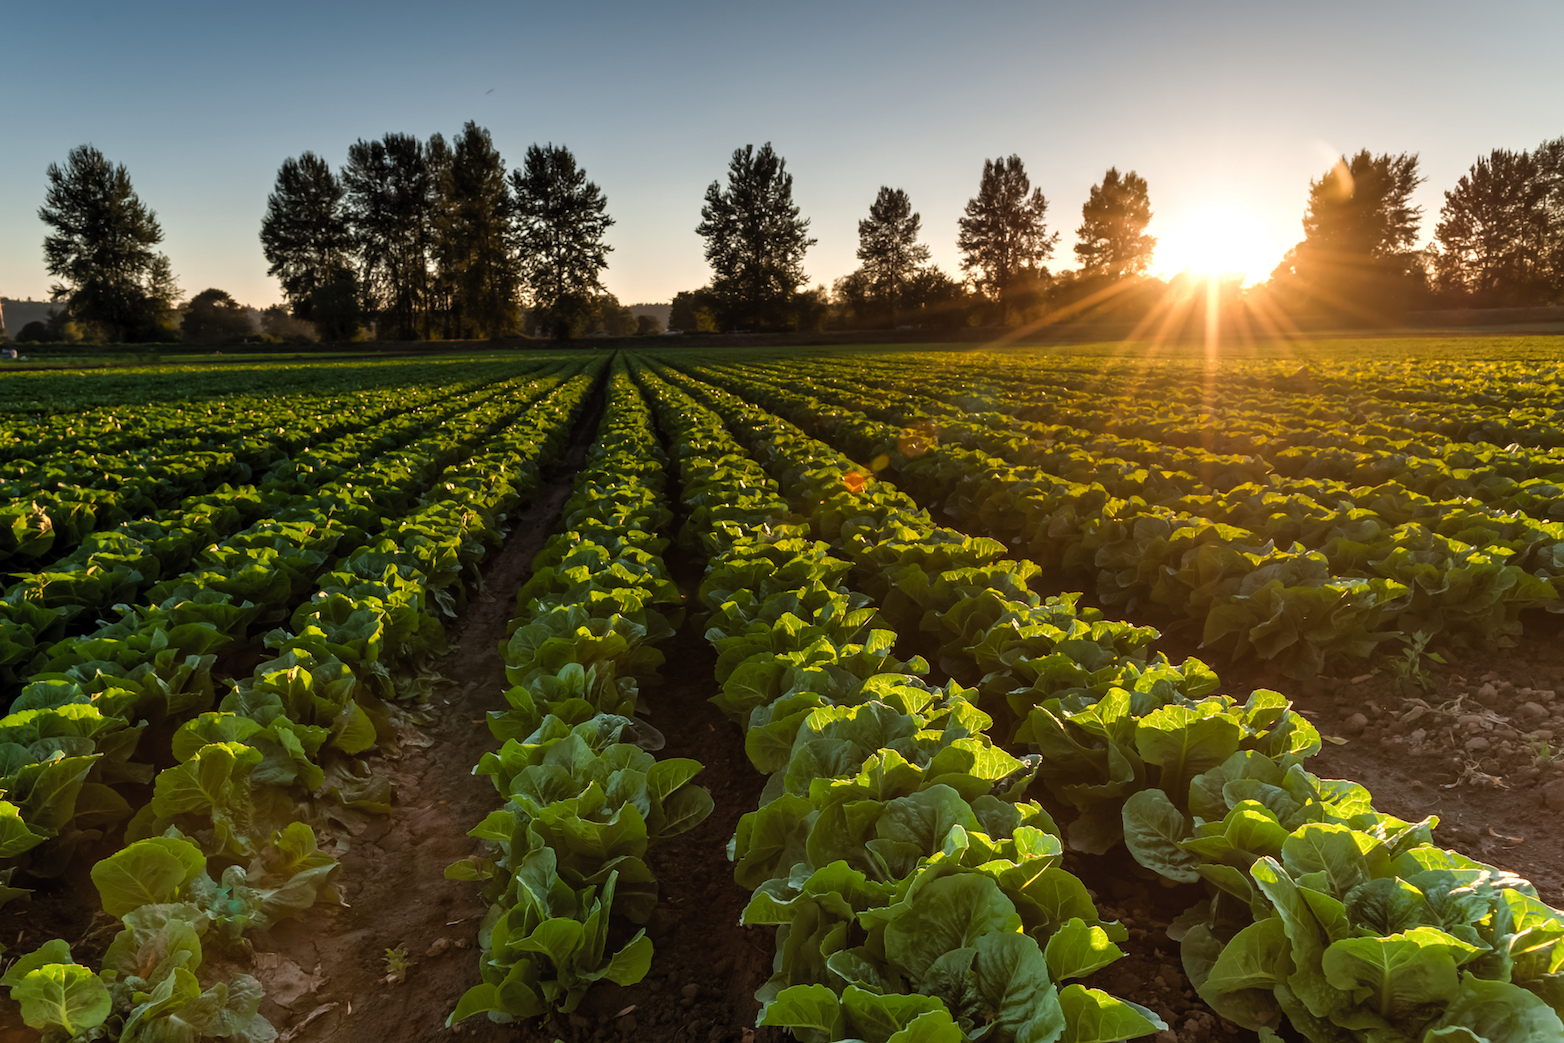 If nothing is done to mitigate climate change and reduce emissions, vegetable crop yields could be reduced by 35 percent, and legumes by nine percent towards to the end of the century.